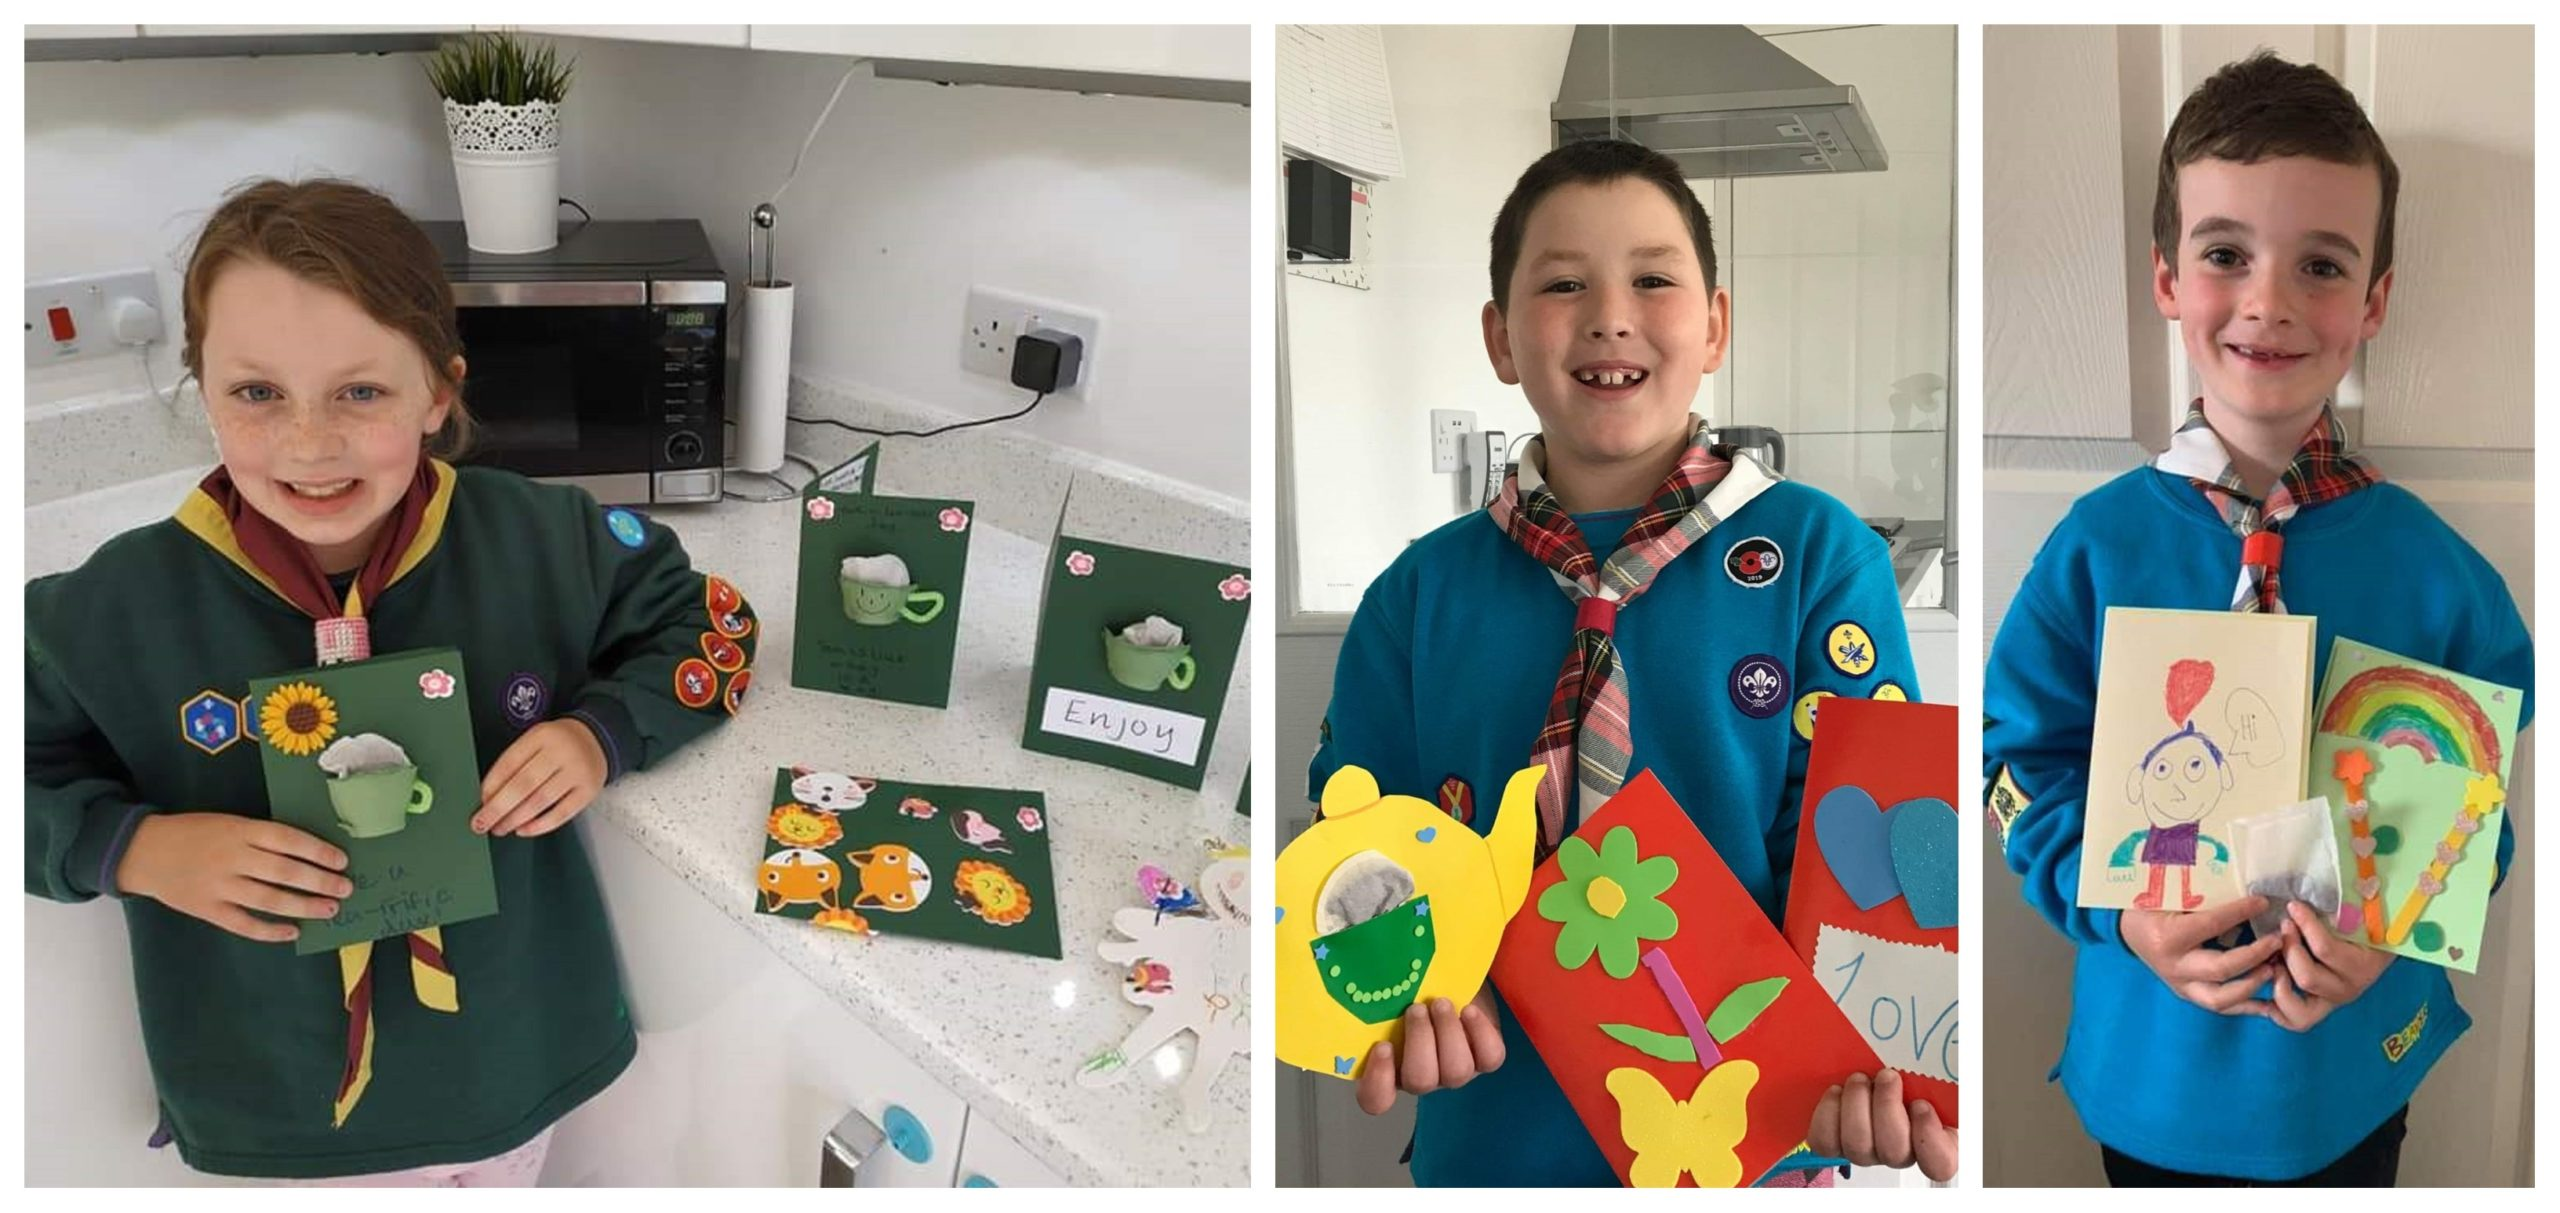 Some of the Rosyth Scouts with their creations.